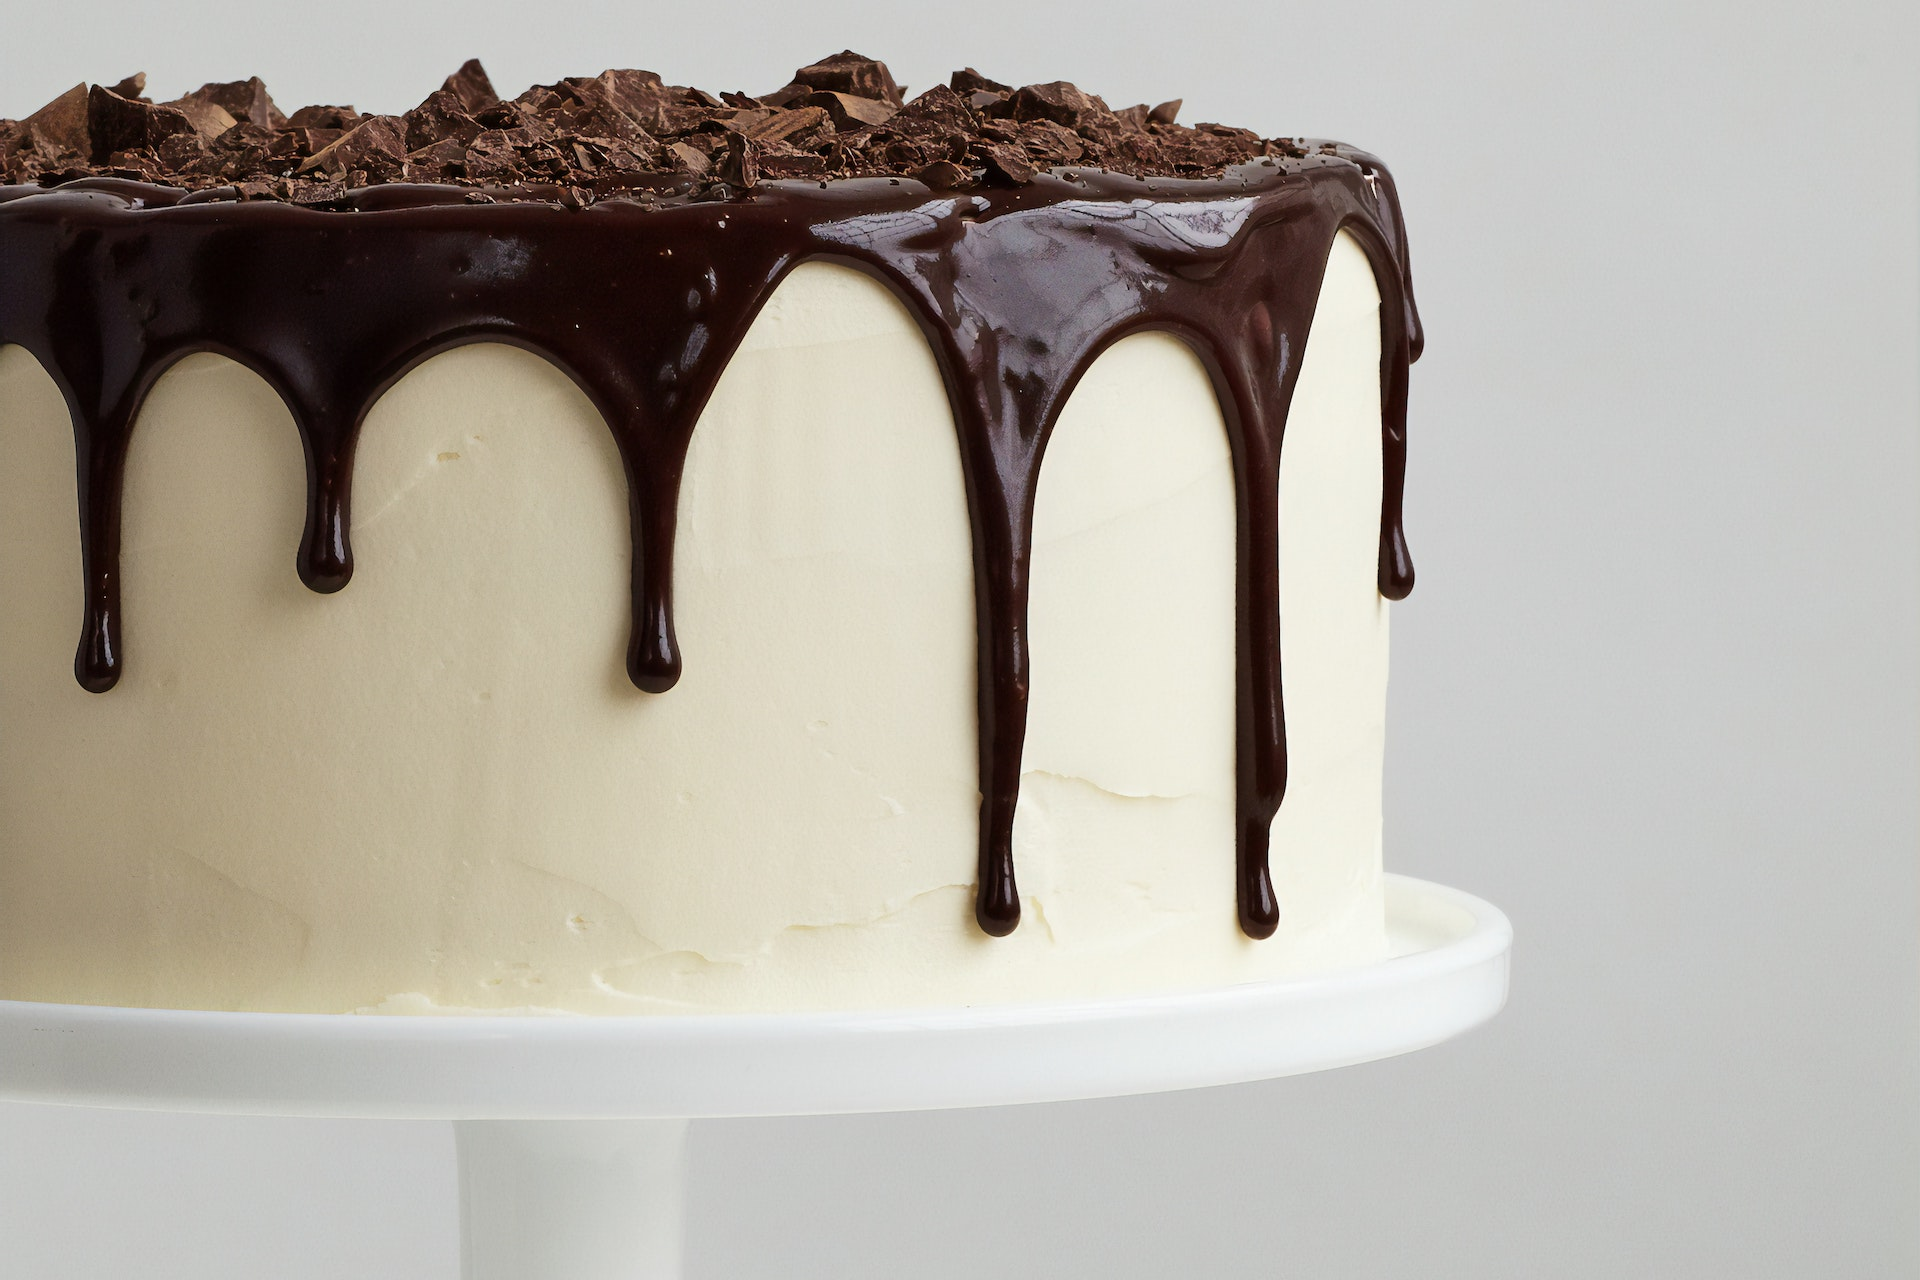 The Cure: What we can learn from chocolate cake